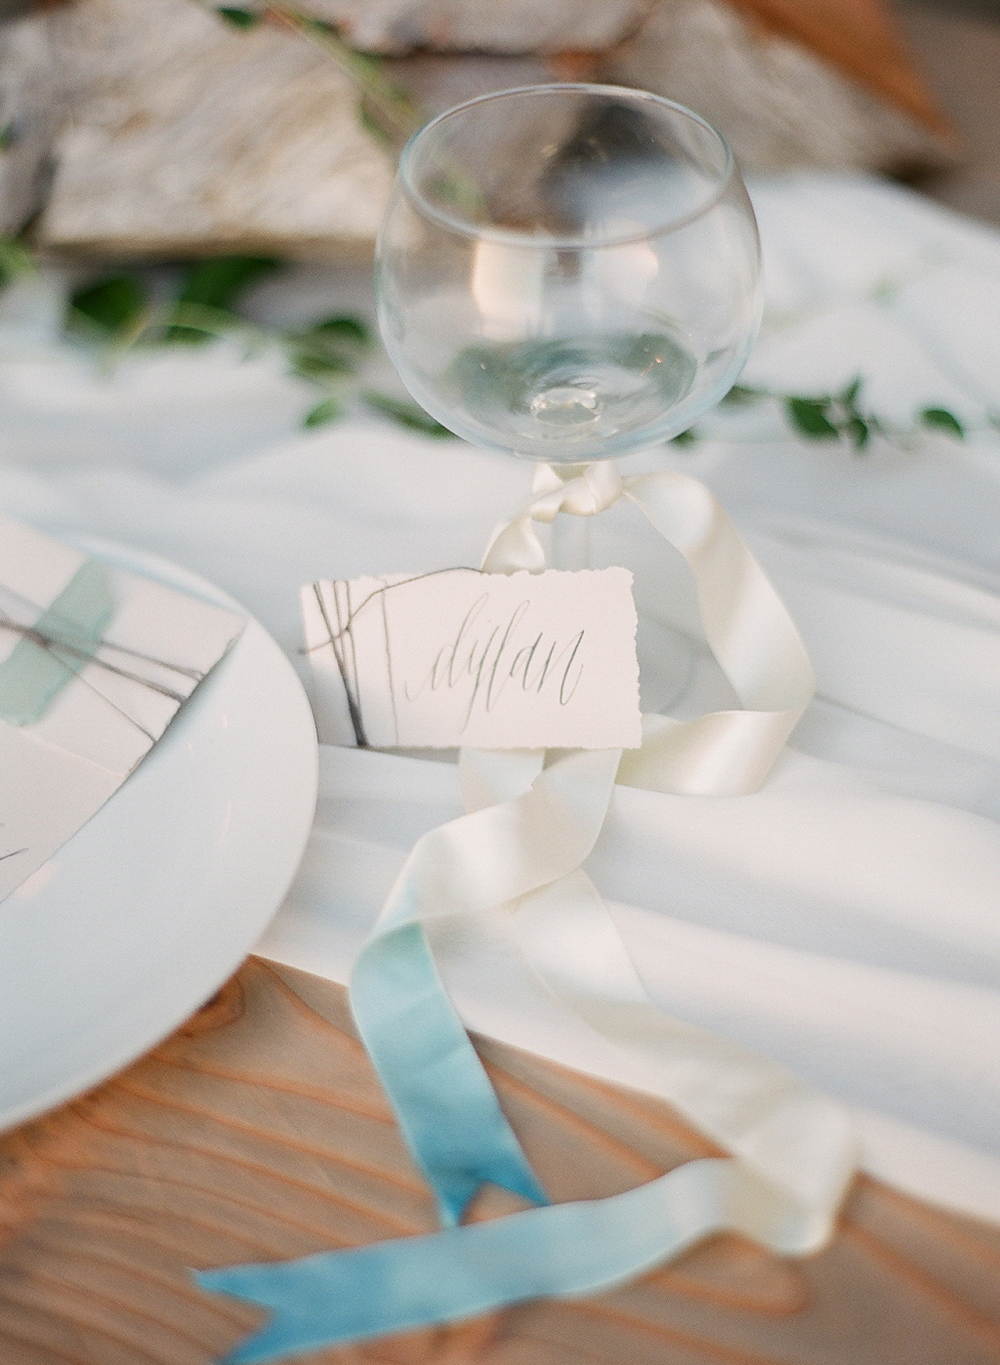 calligraphed escort cards by Gracelineart.com and indigo dip-dyed ribbons at this coastal tablescape at this wedding on the coast in oregon coast photographed by Destination Wedding Photographer, Lexia Frank - a film photographer in portland oregon. TOP DESTINATION WEDDING PHOTOGRAPHY, OREGON COAST WEDDING, WWW DOT LEXIA FRANK DOT COM